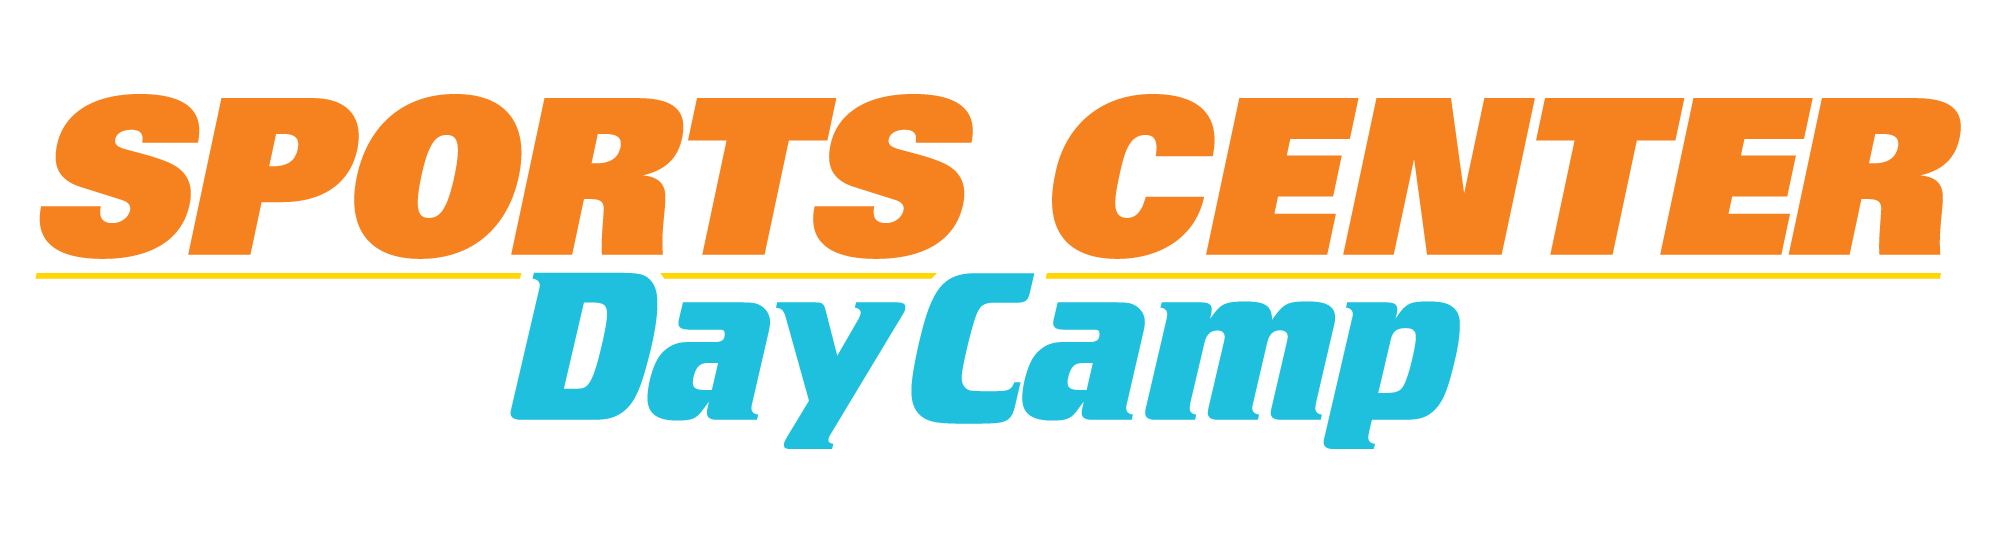 Sports Center Day Camp